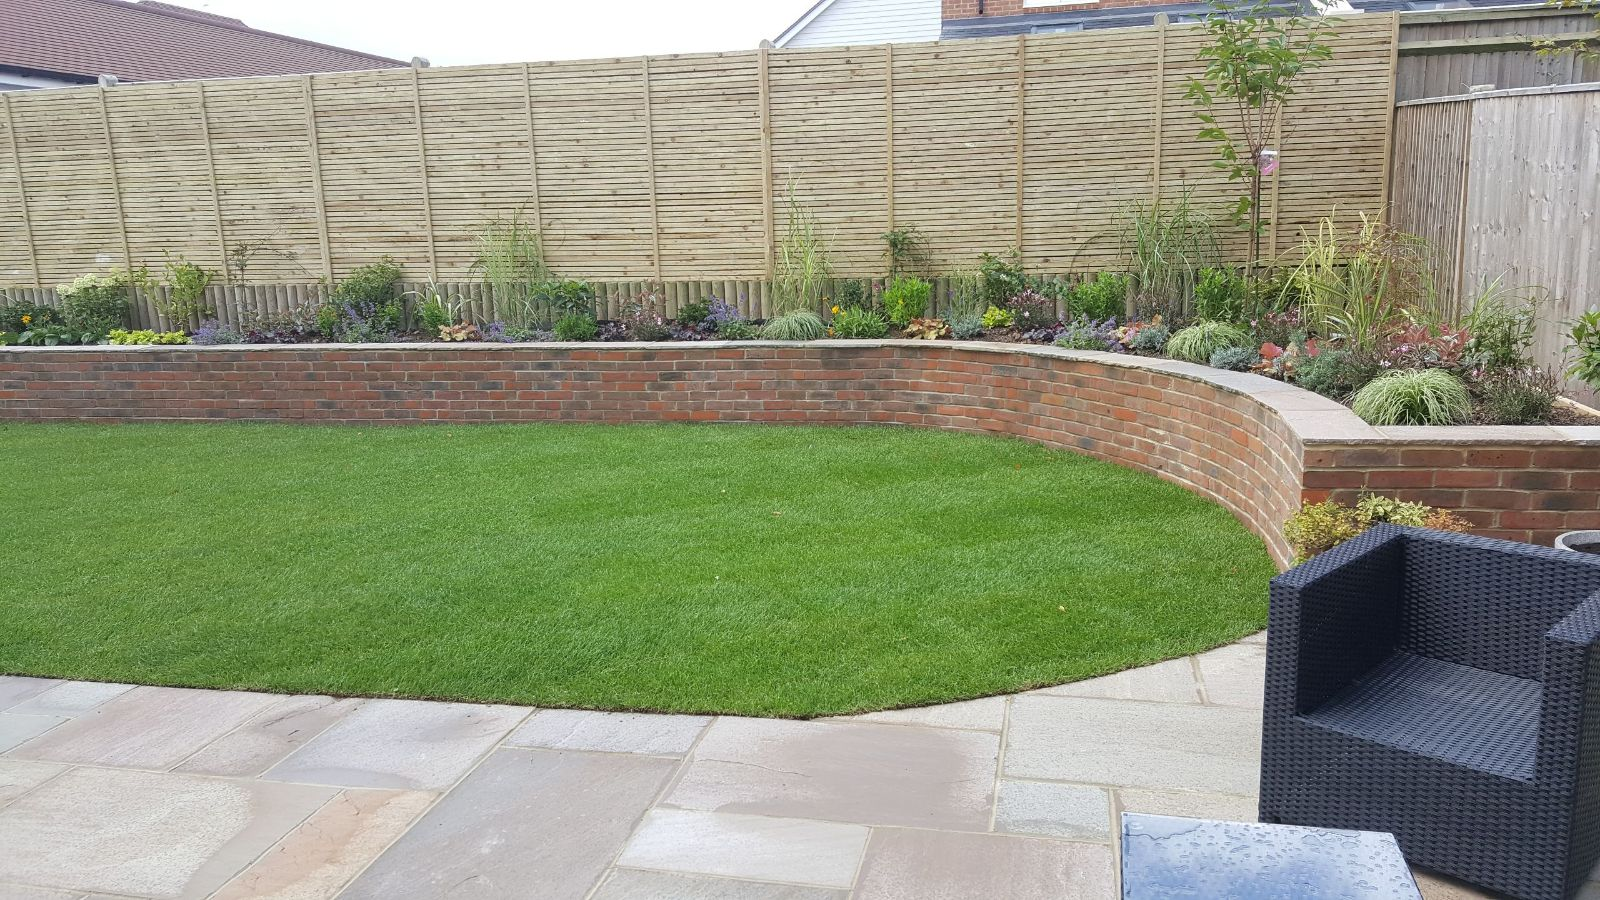 arched wall and new lawn